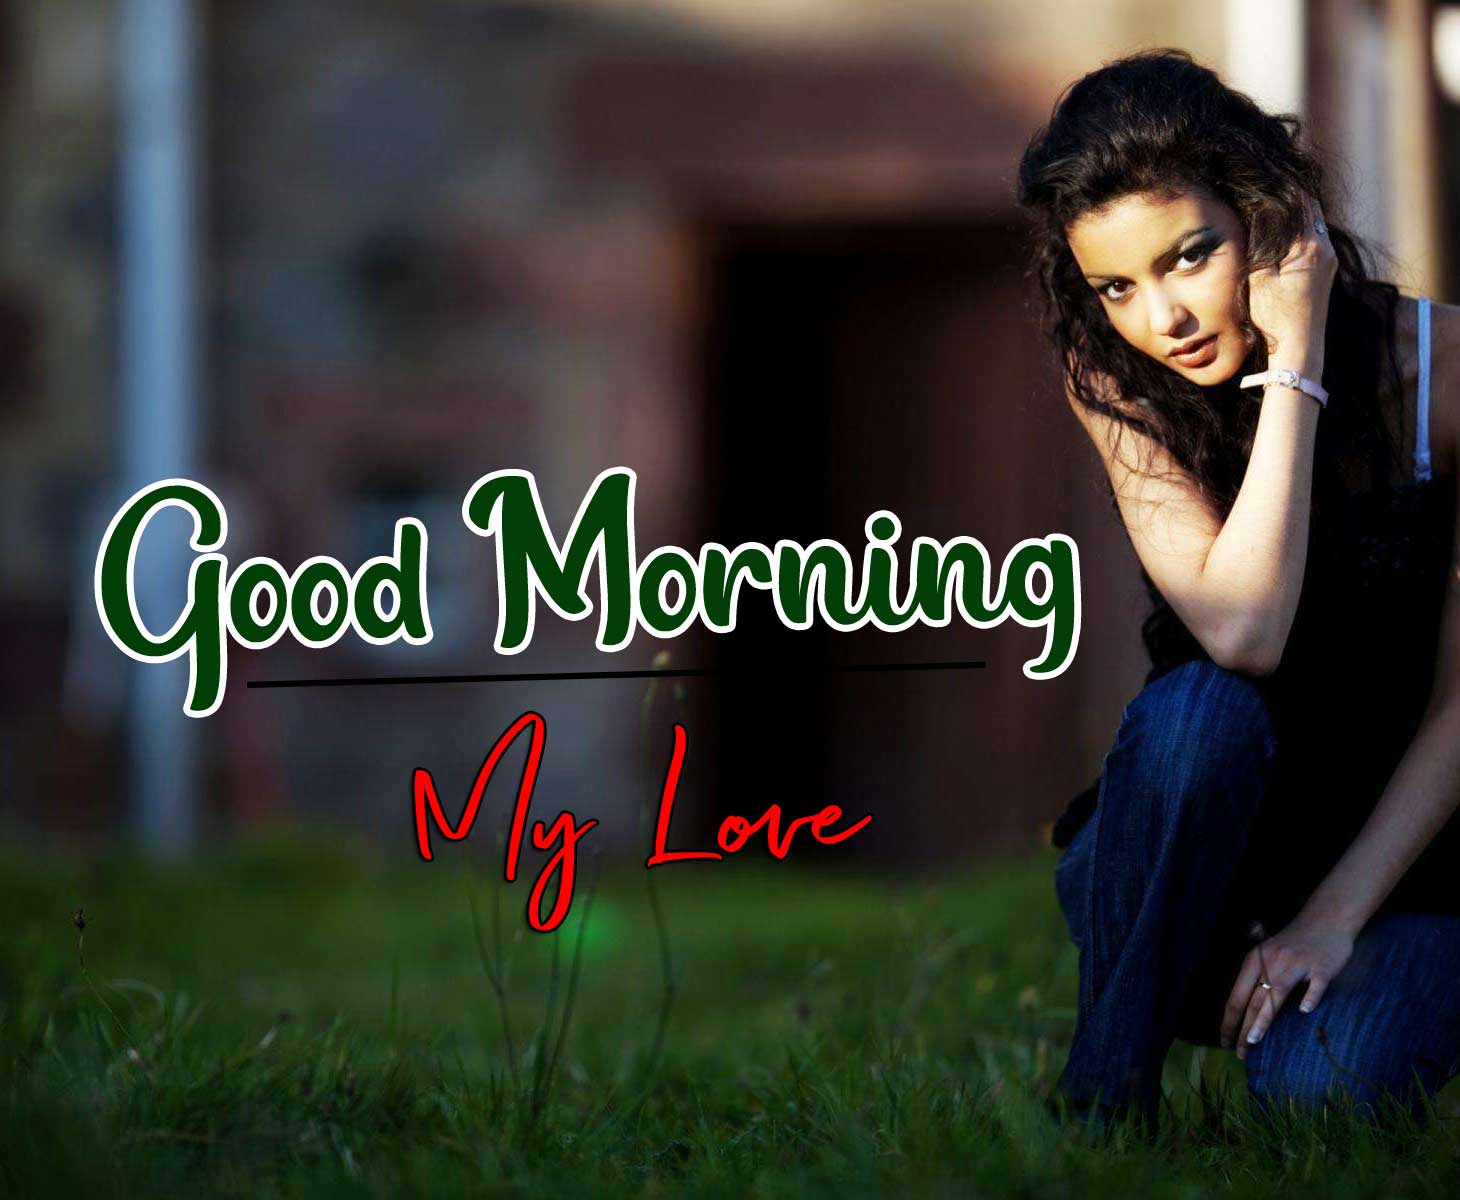 Beautiful Girl Good Morning Images 5